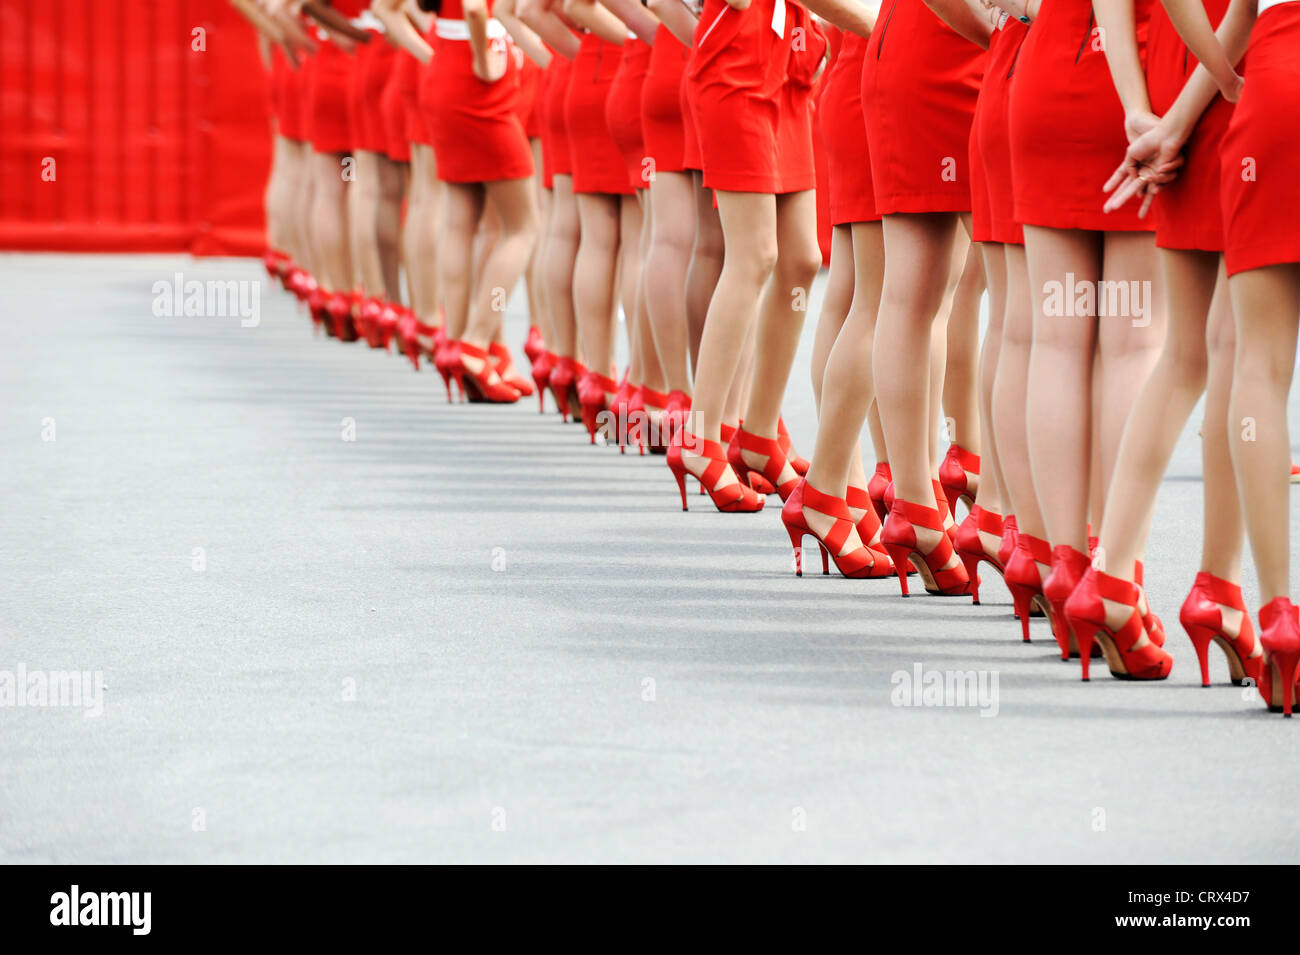 women wearing red dresses and red high-heeled shoes stand in a row - Stock Image